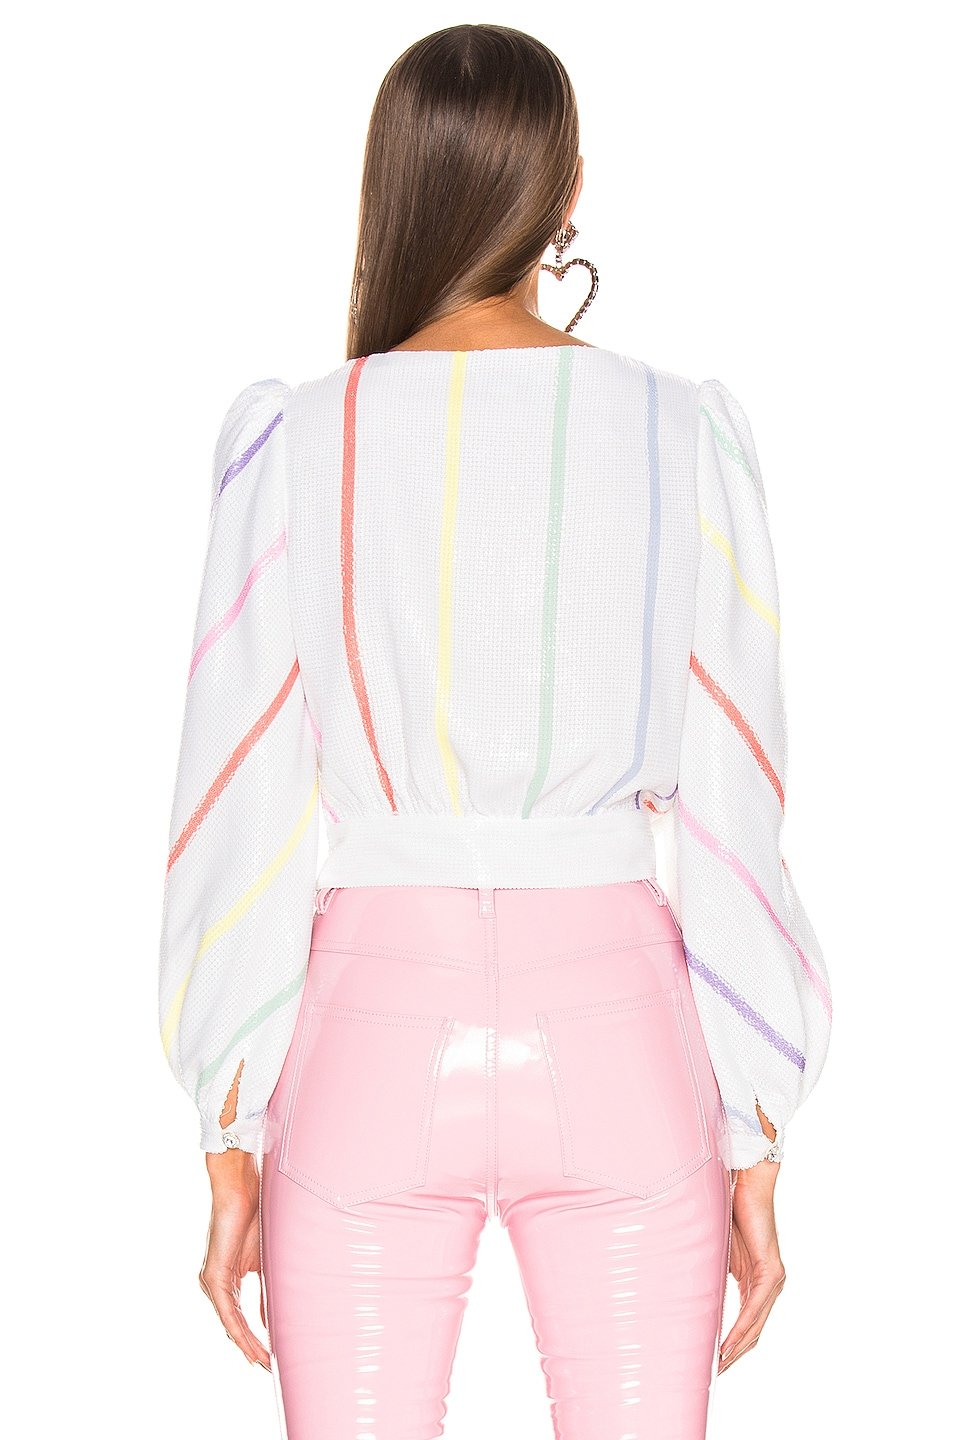 Image 3 of Olivia Rubin Kendall Top in Thin White Stripe